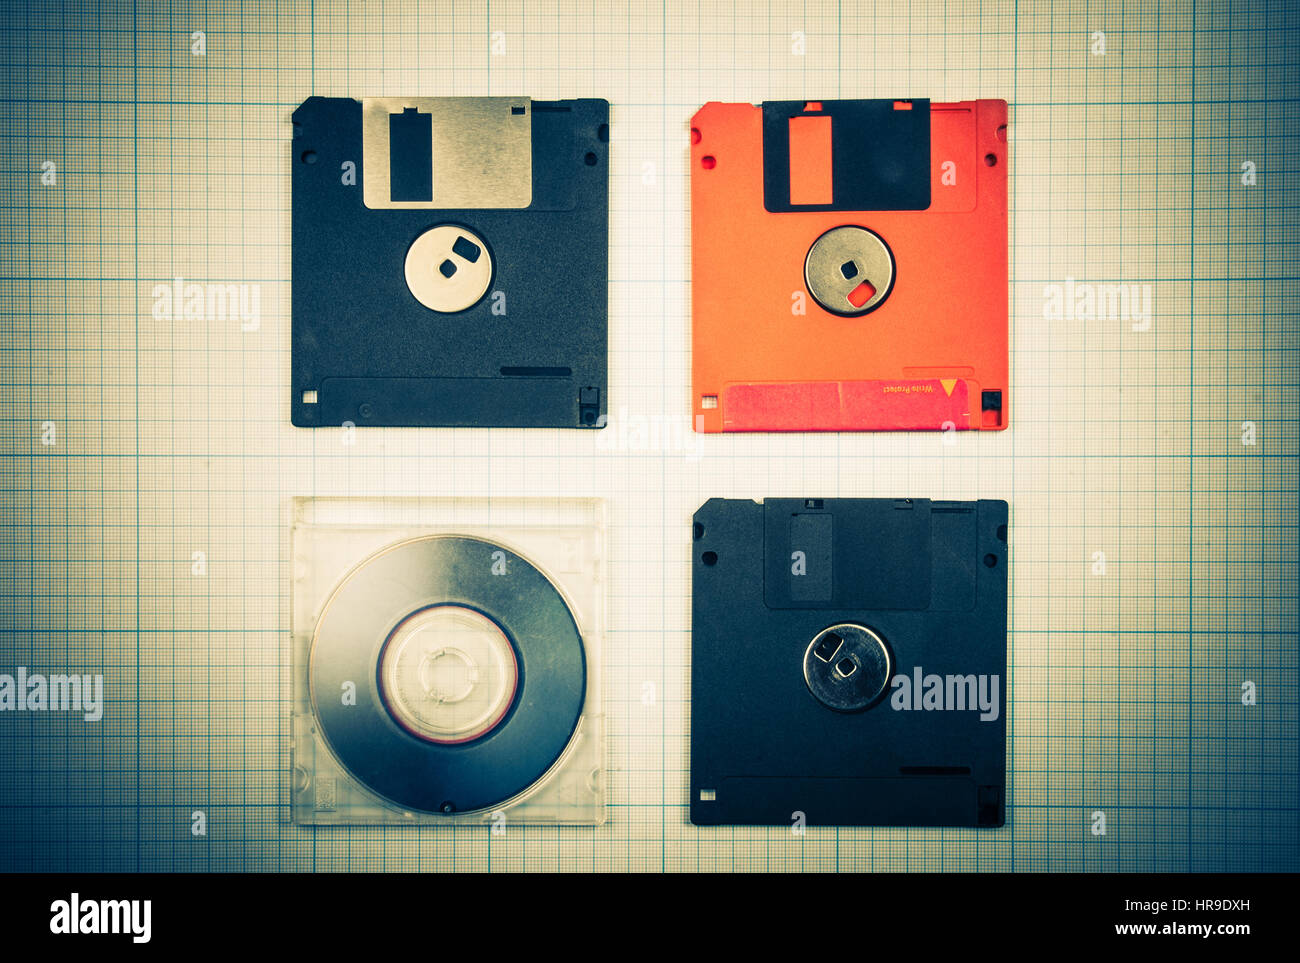 Digital scale stock photos digital scale stock images page 37 vintage background computer floppy disks and mini cd on the blueprint paper toned malvernweather Choice Image